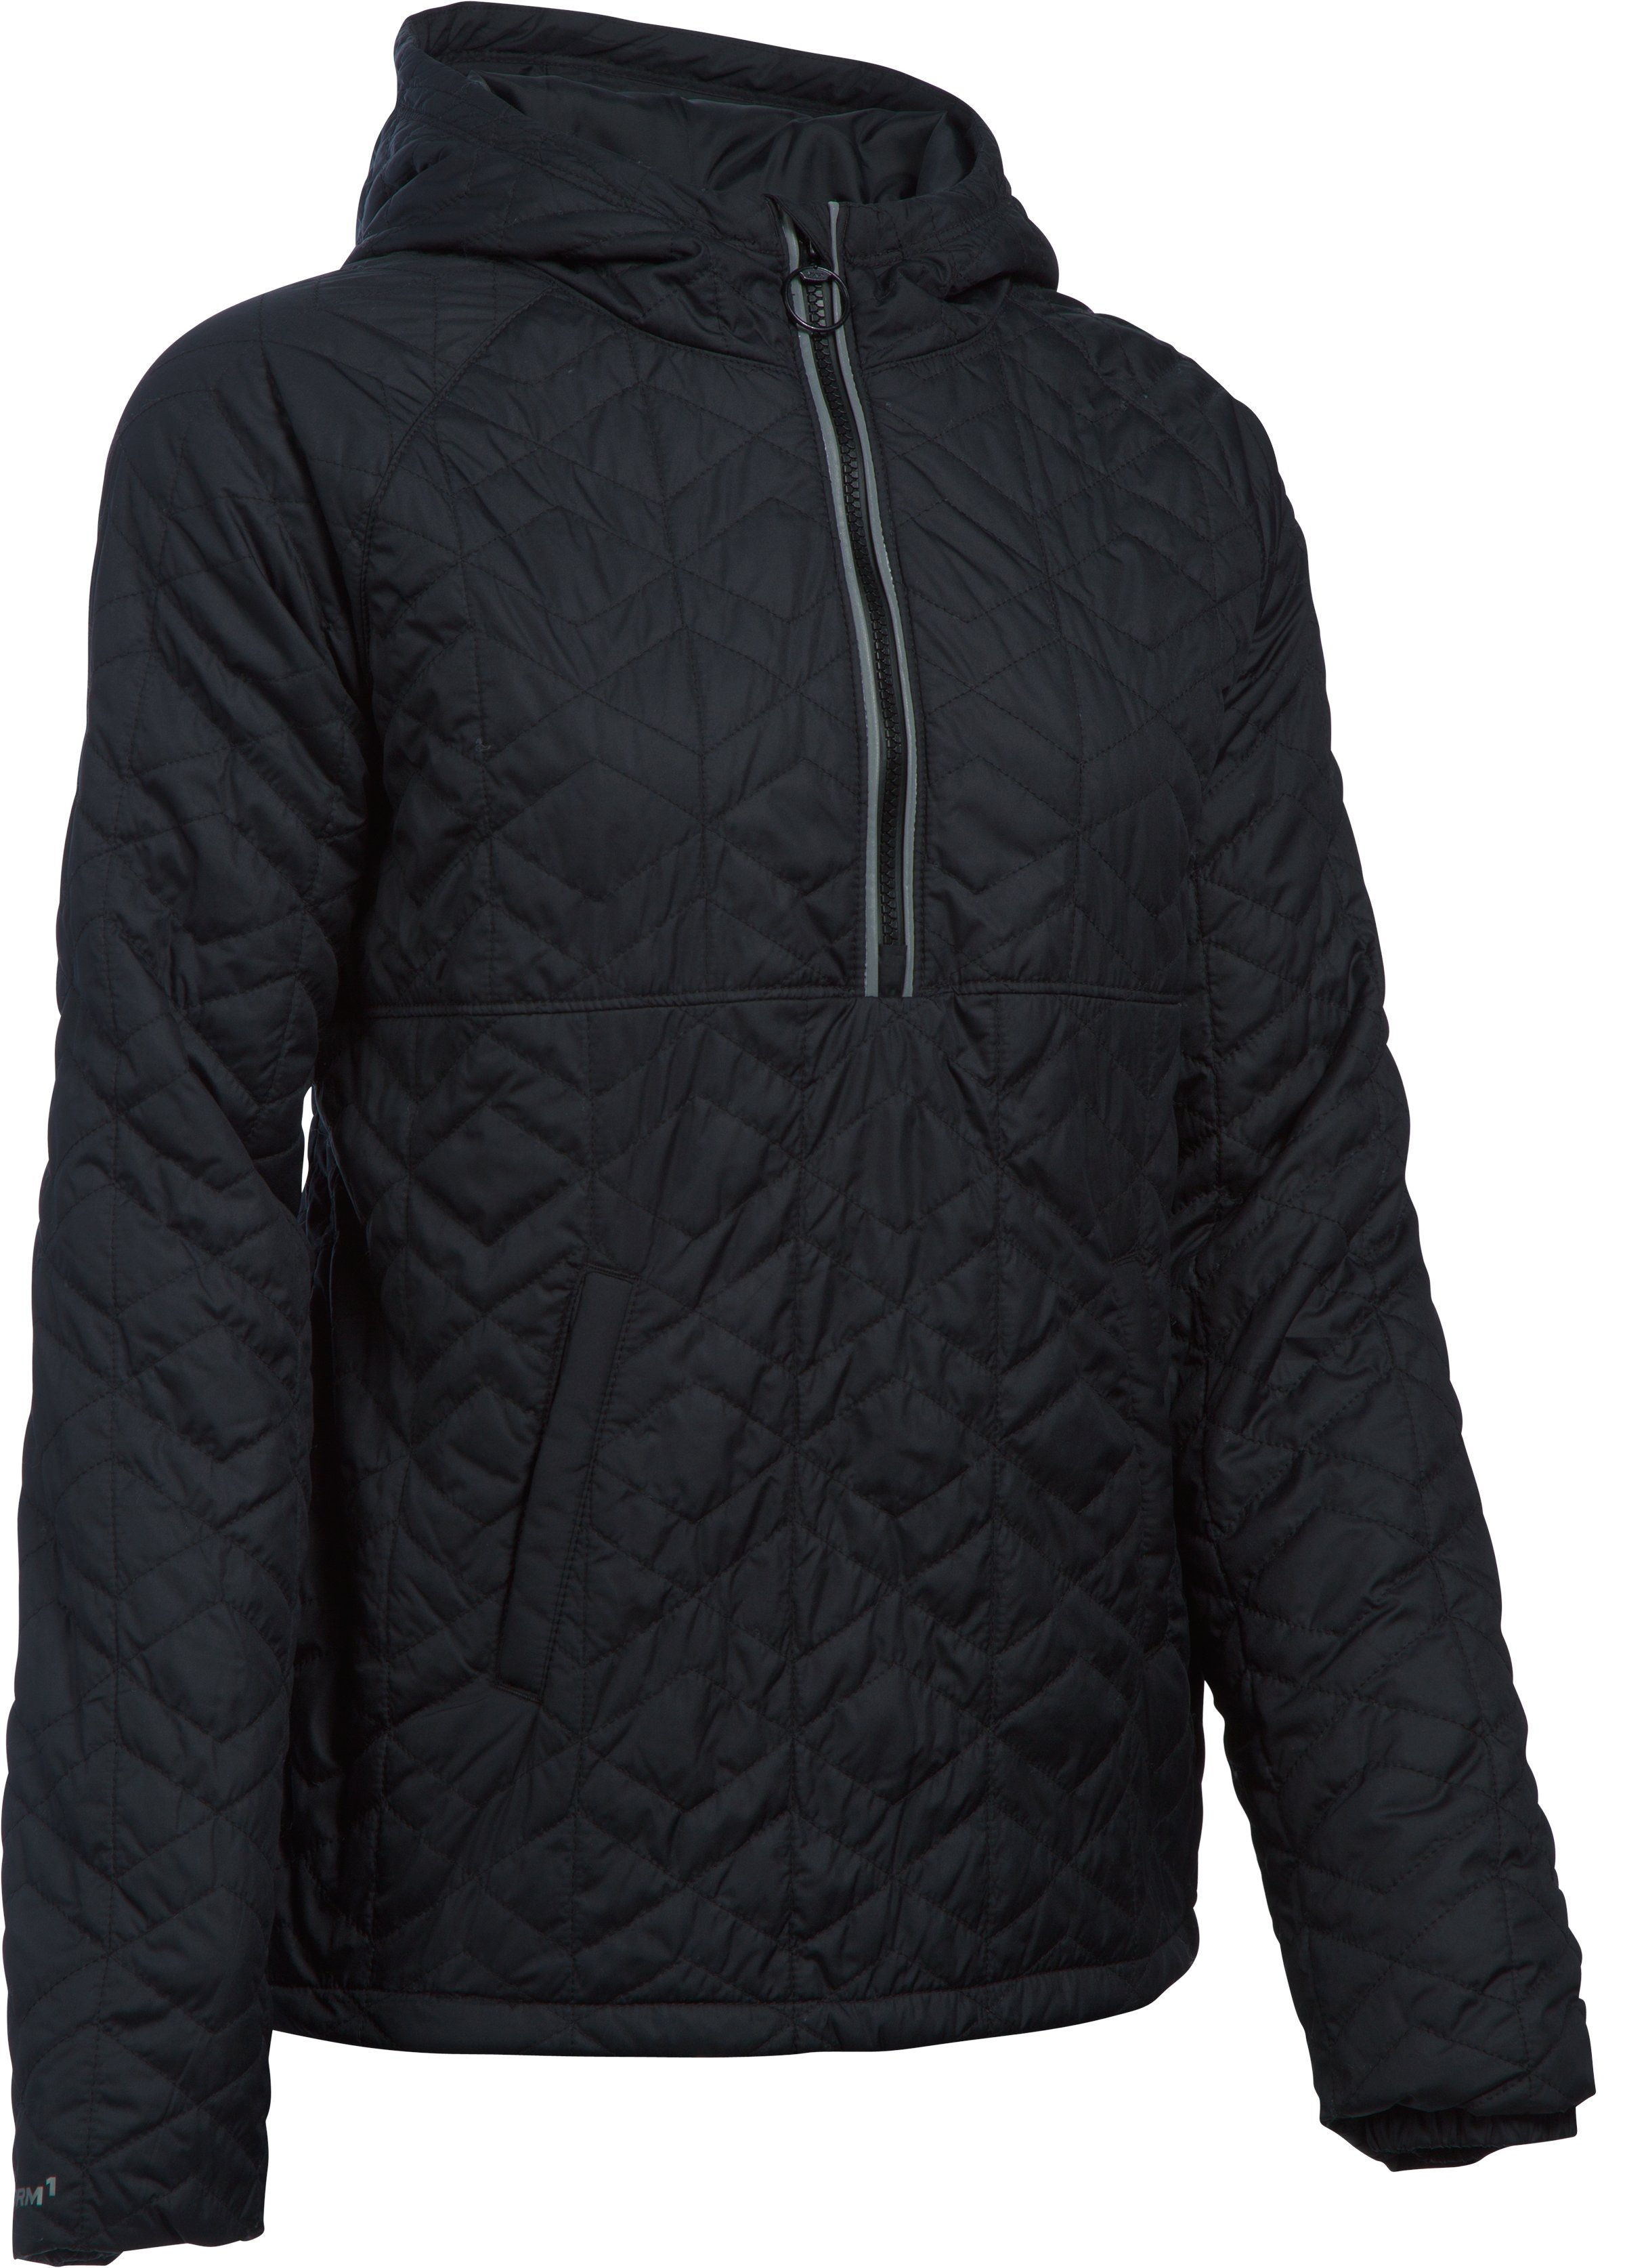 Women's UA Cozy Popover Jacket, Black